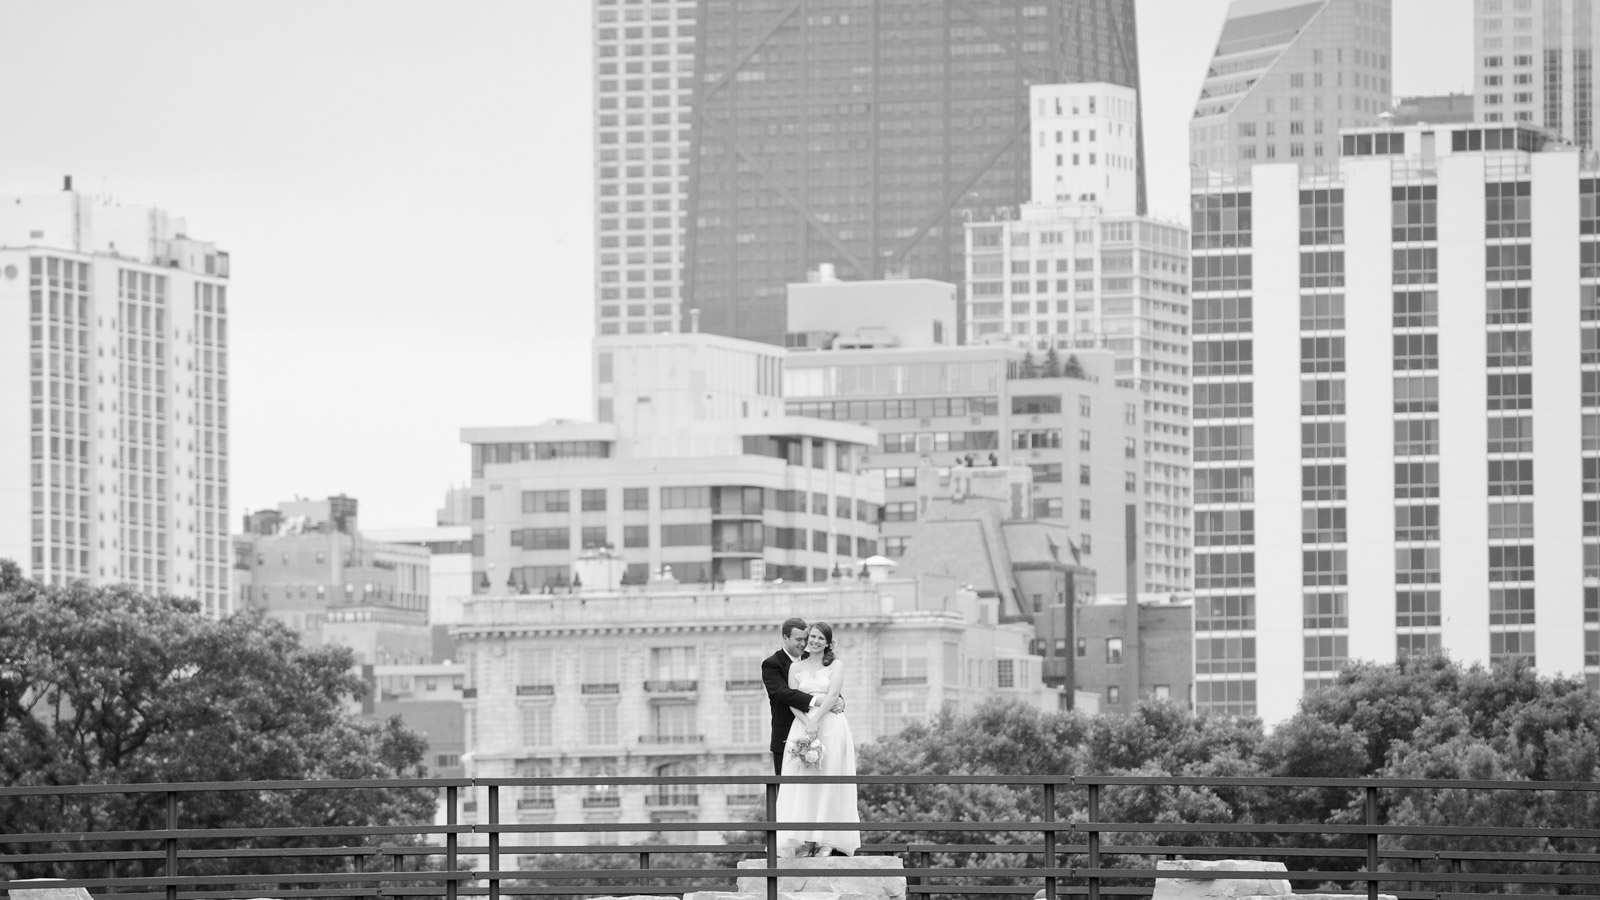 Bride and Groom in Chicago Lincoln Park Zoo South Pond on bridge in artistic Black and White photo